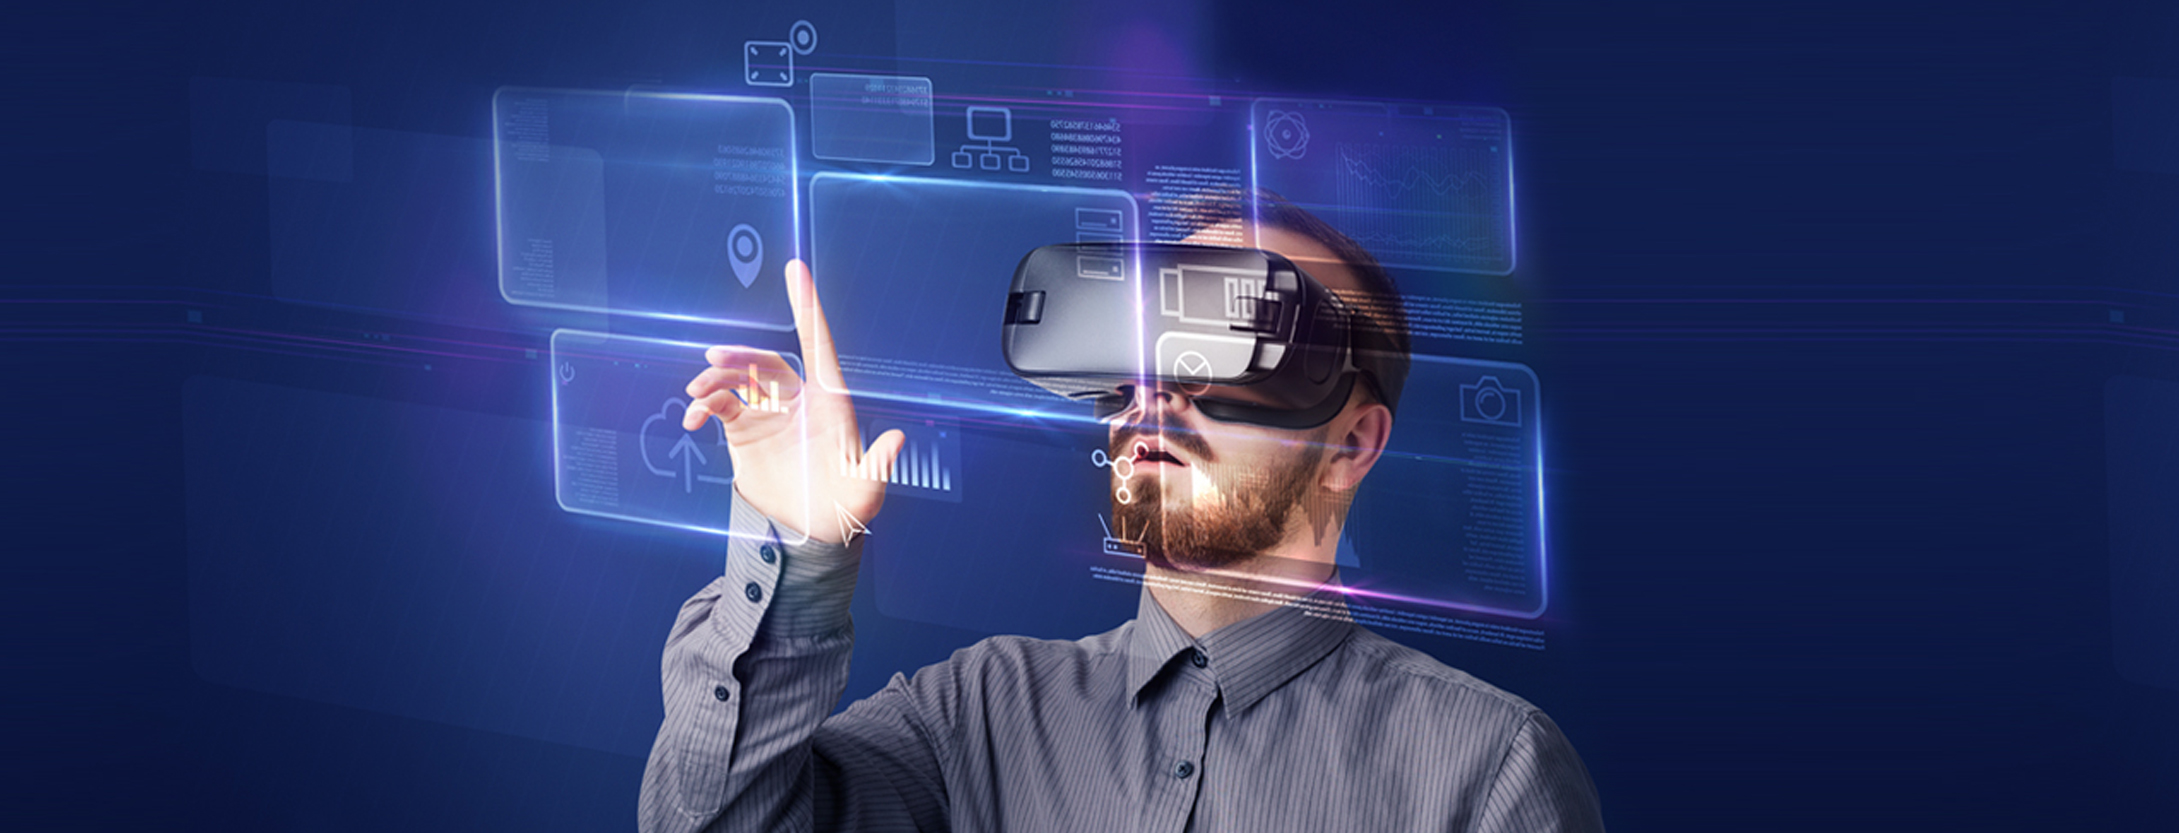 New Realities: 3D, VR, AR and the Future of Design – Next big thing in the industry